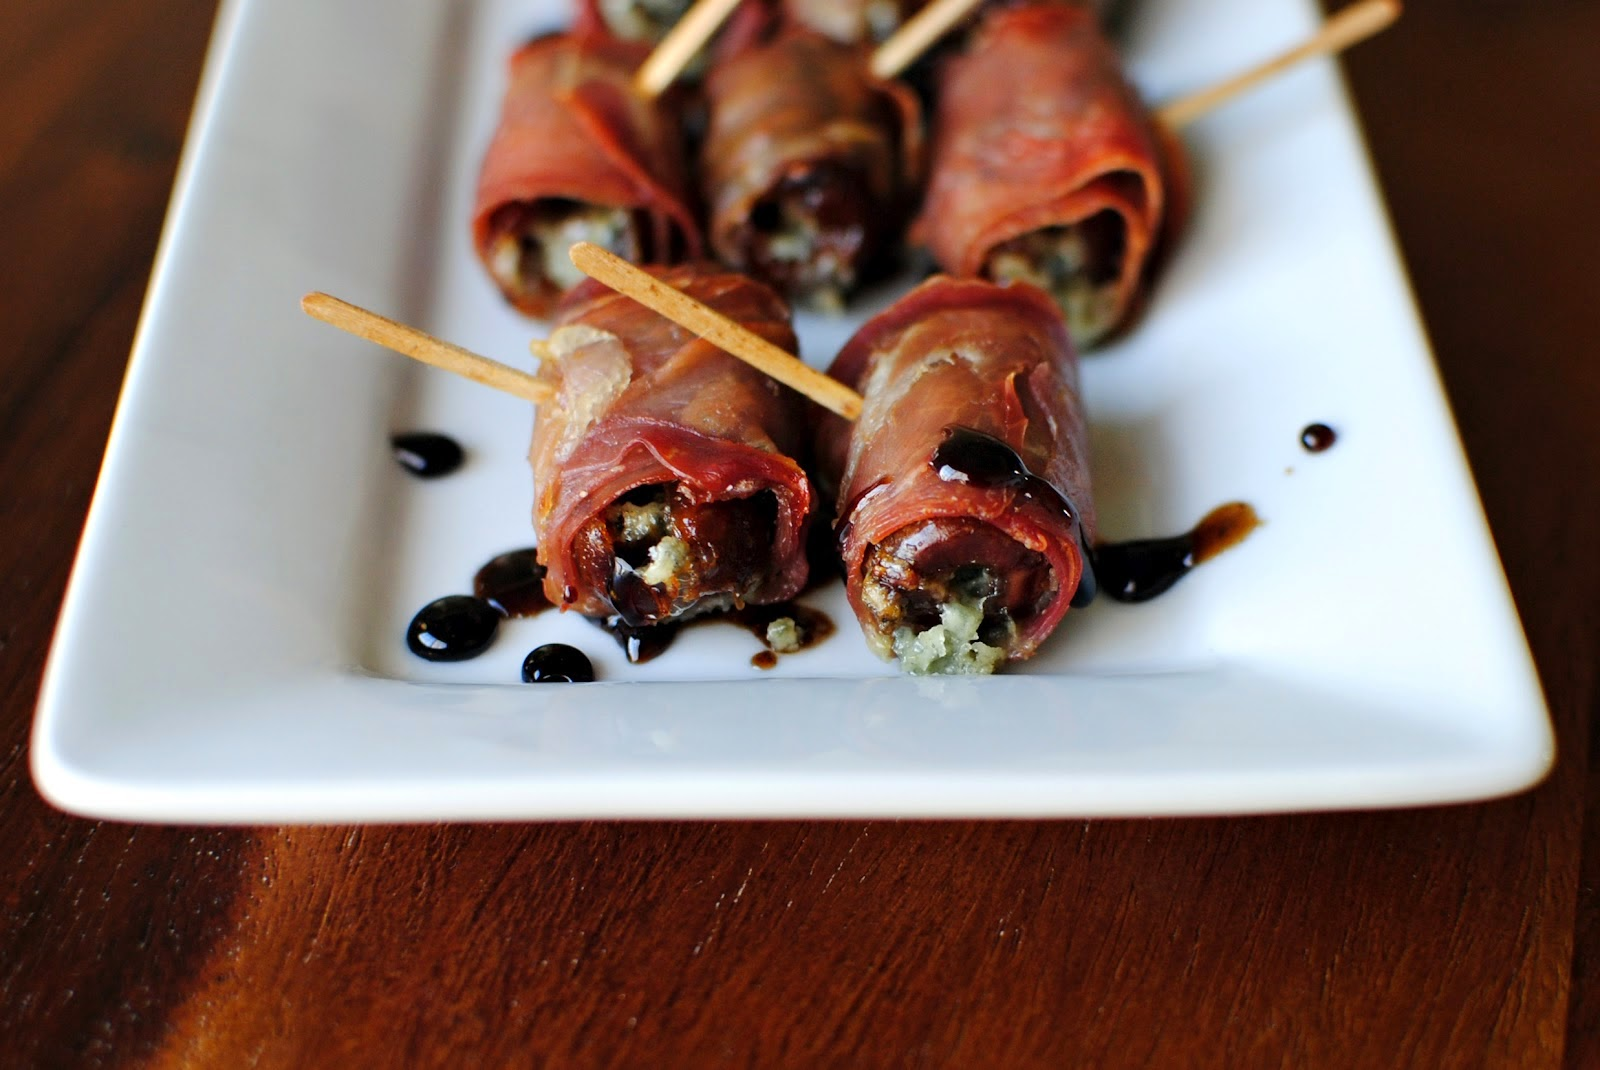 Prosciuttowrapped Stuffed Dates Recipe